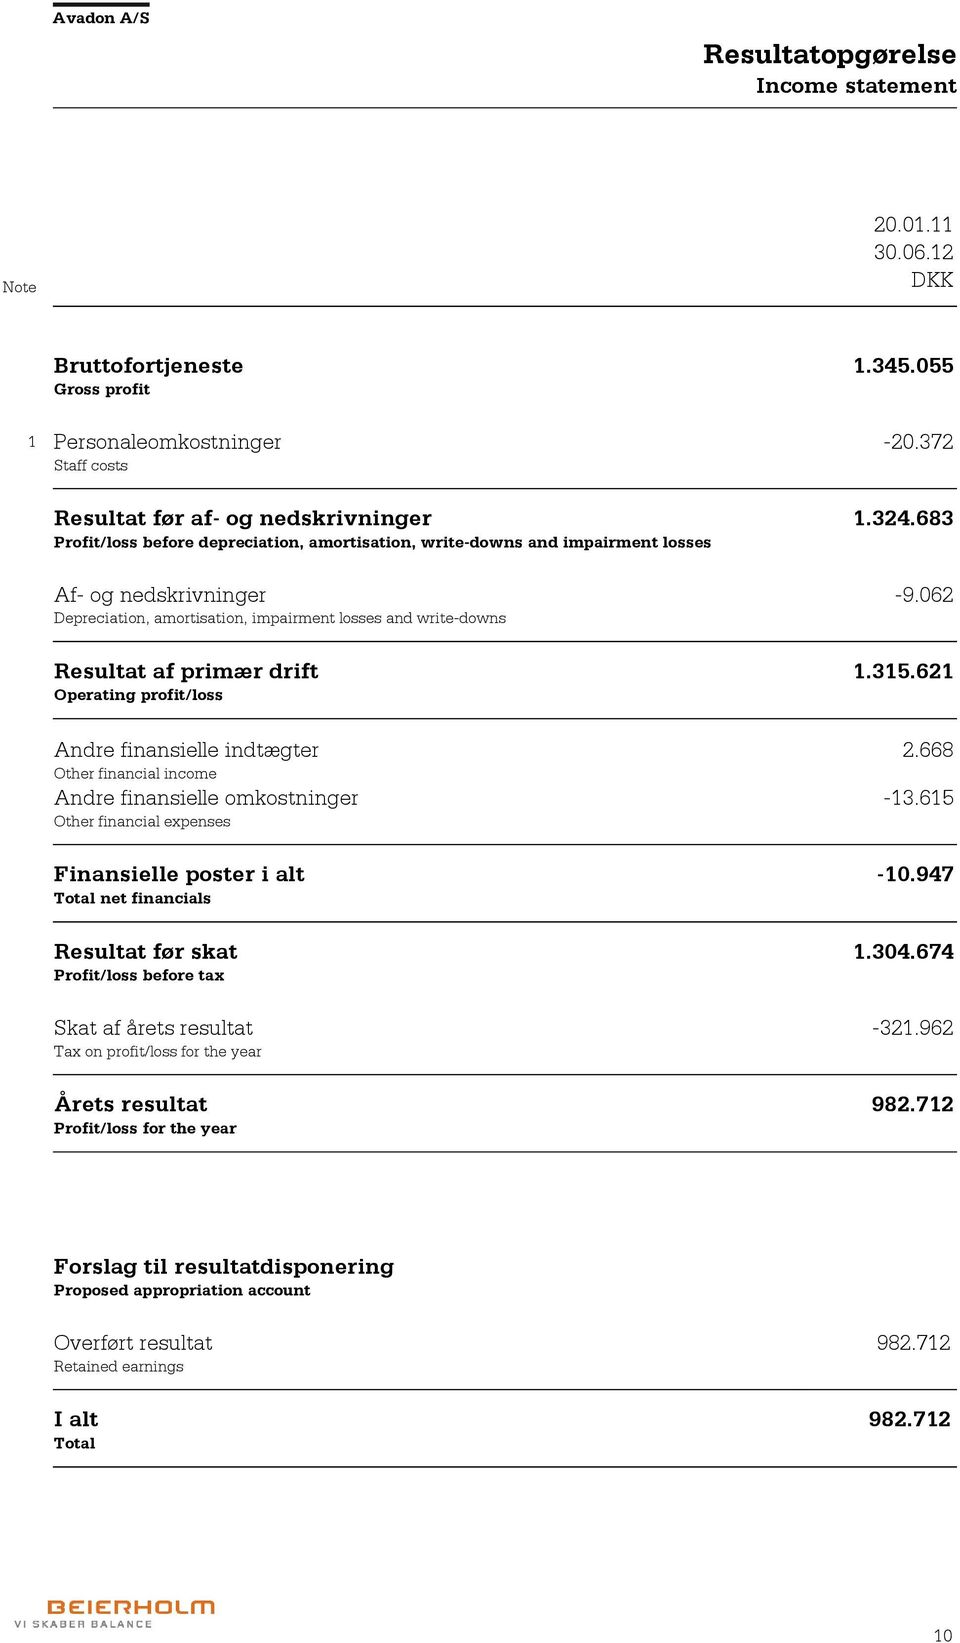 062 Depreciation, amortisation, impairment losses and write-downs Resultat af primær drift 1.315.621 Operating profit/loss Andre finansielle indtægter 2.